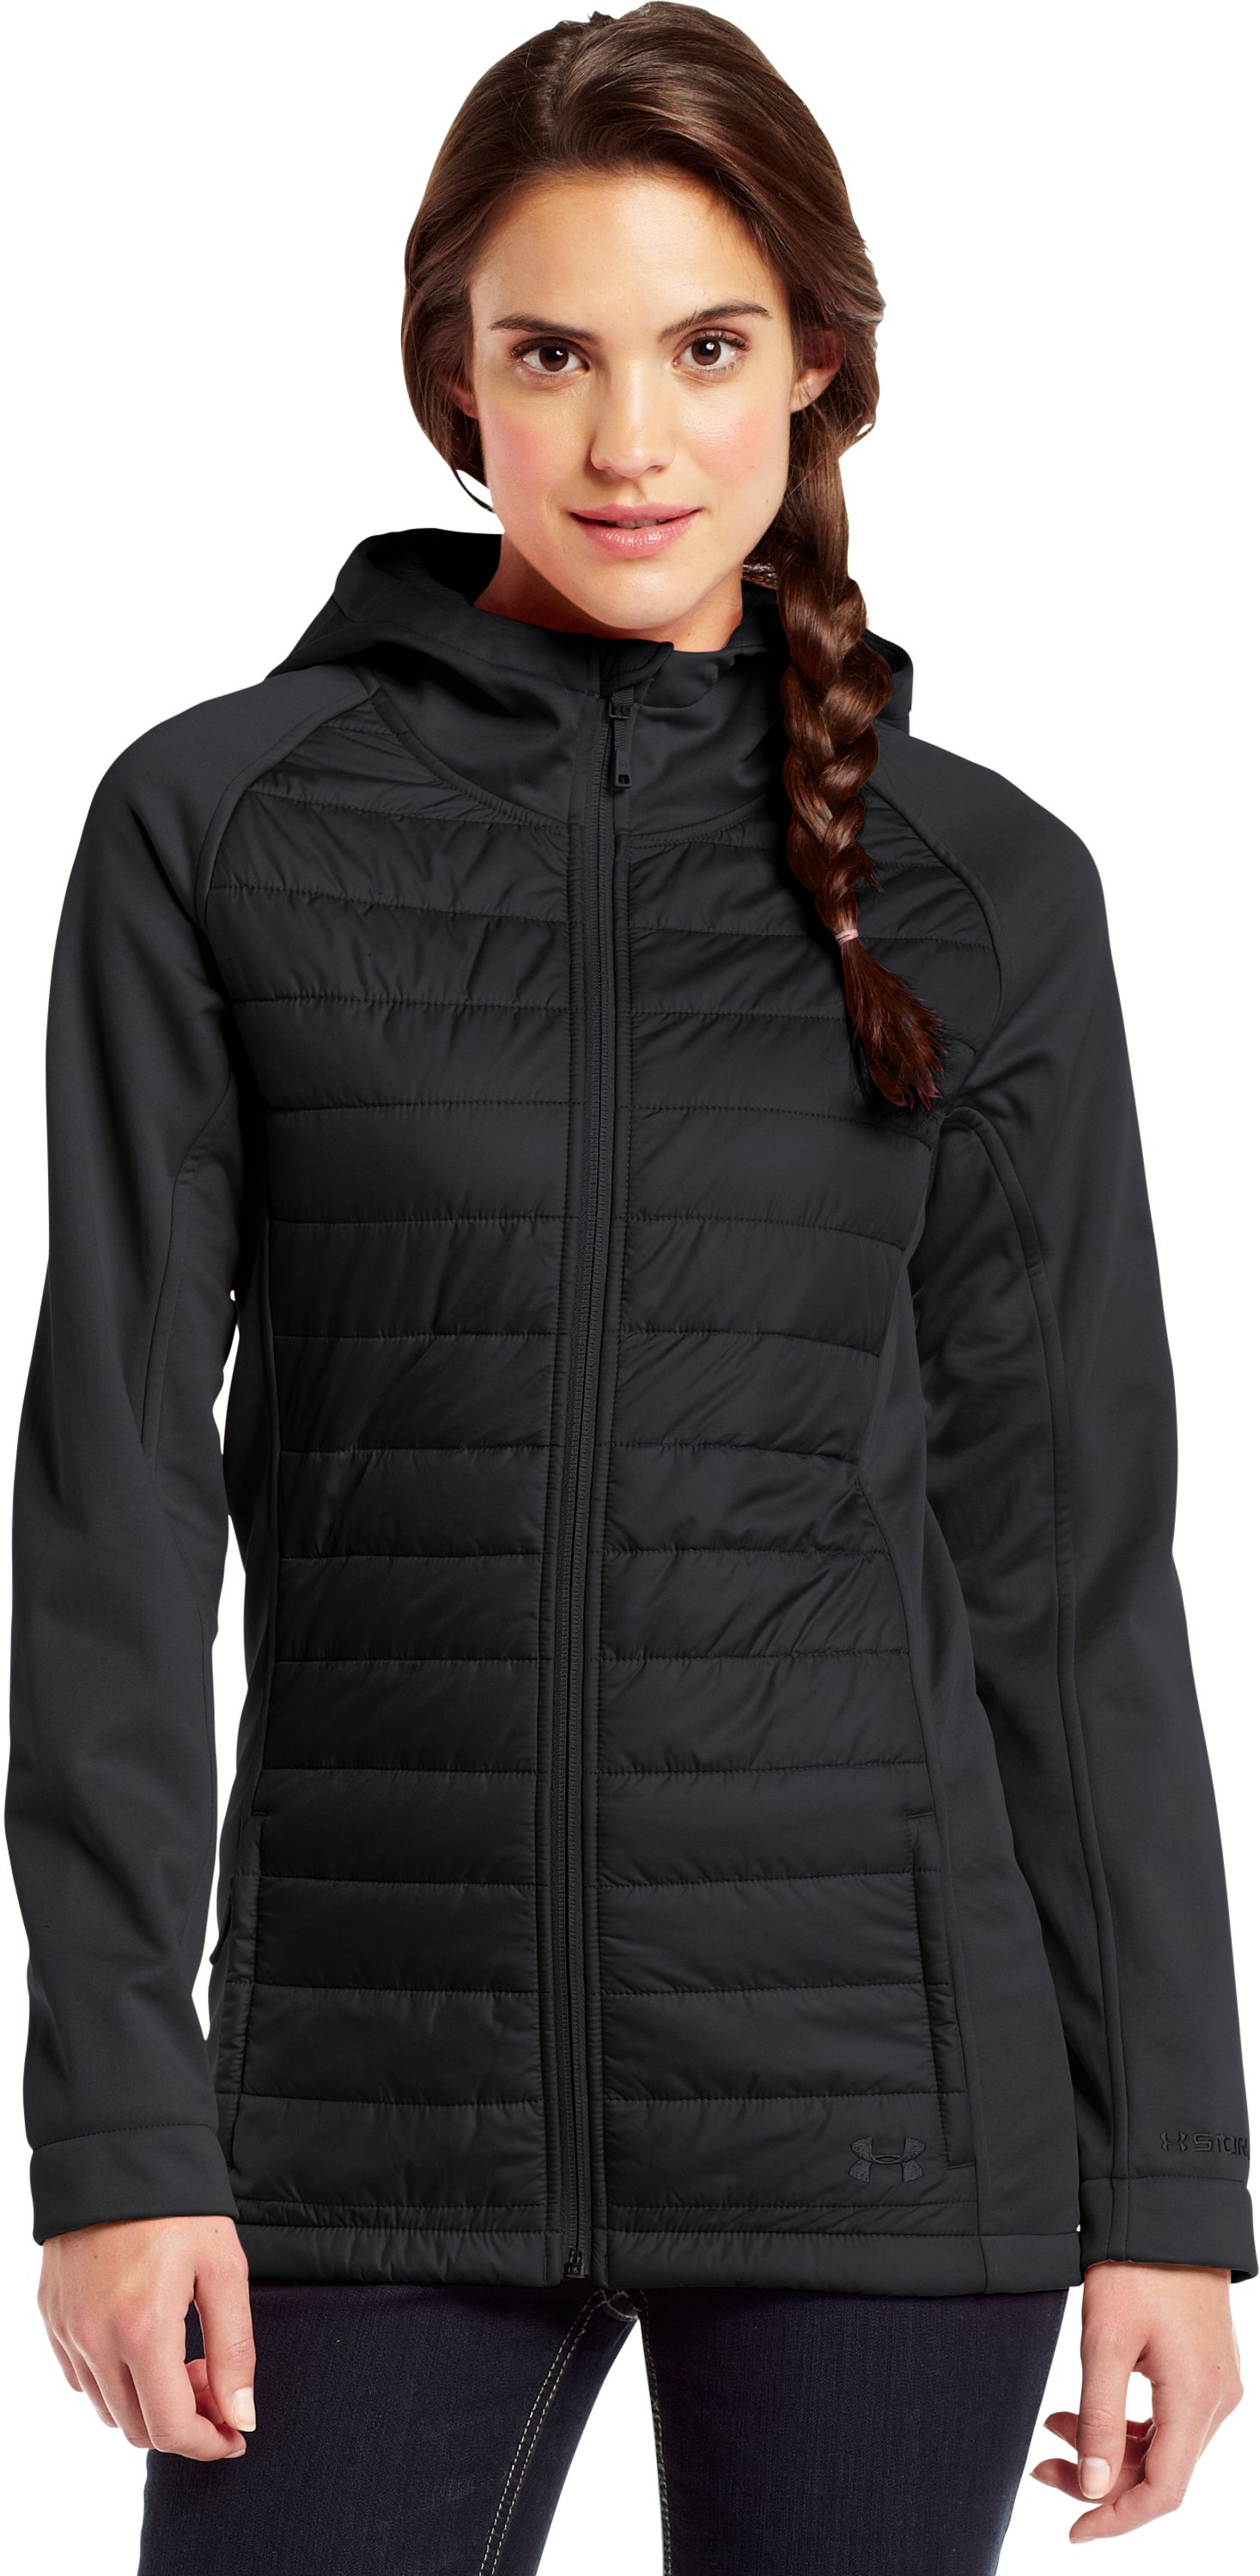 Women's ColdGear® Infrared Werewolf Jacket, Black , zoomed image